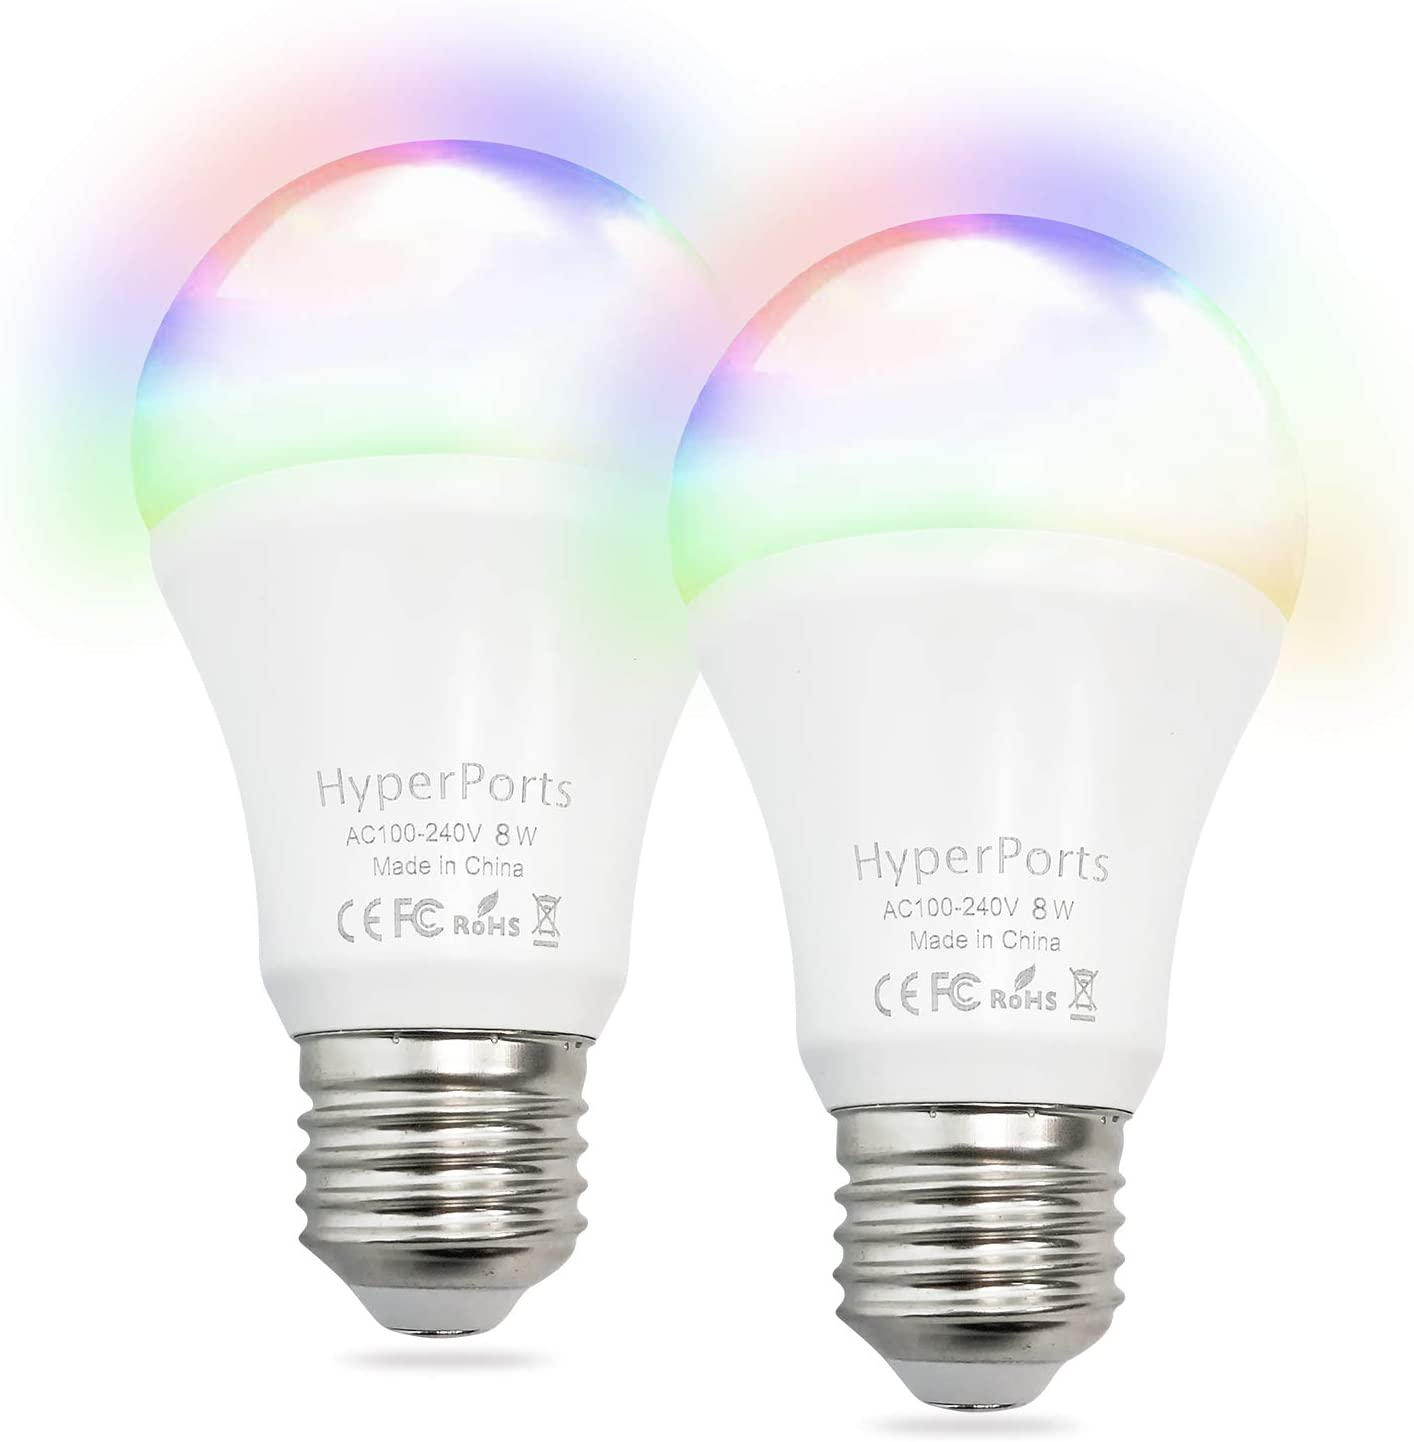 RGB /& CCT 2700-6500K Color Changing Tramsmart E26 BR30 LED Smart Light Bulb No Hub Required 900LM 2 Pack 80w Equivalent WiFi Smart Light Bulbs Compatible with Alexa and Google 11W